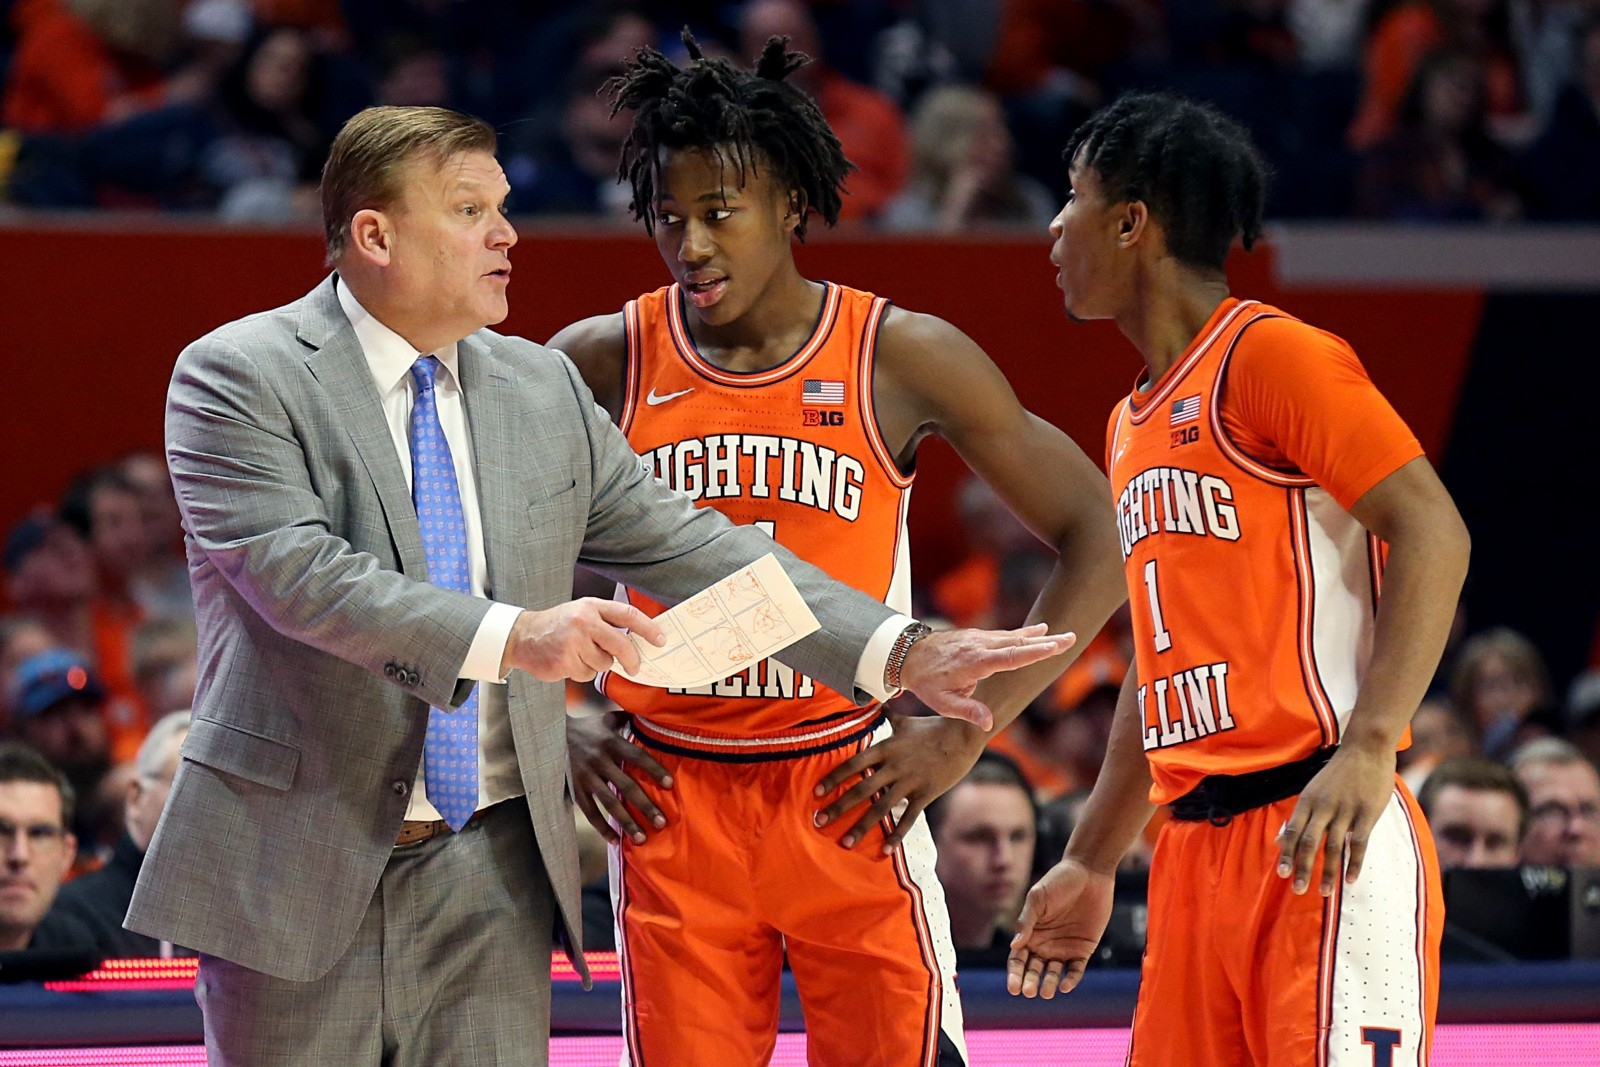 Illinois Basketball: 2019-20 Season Review And 2020-2021 Early Preview-Illinois Rut Report 2021